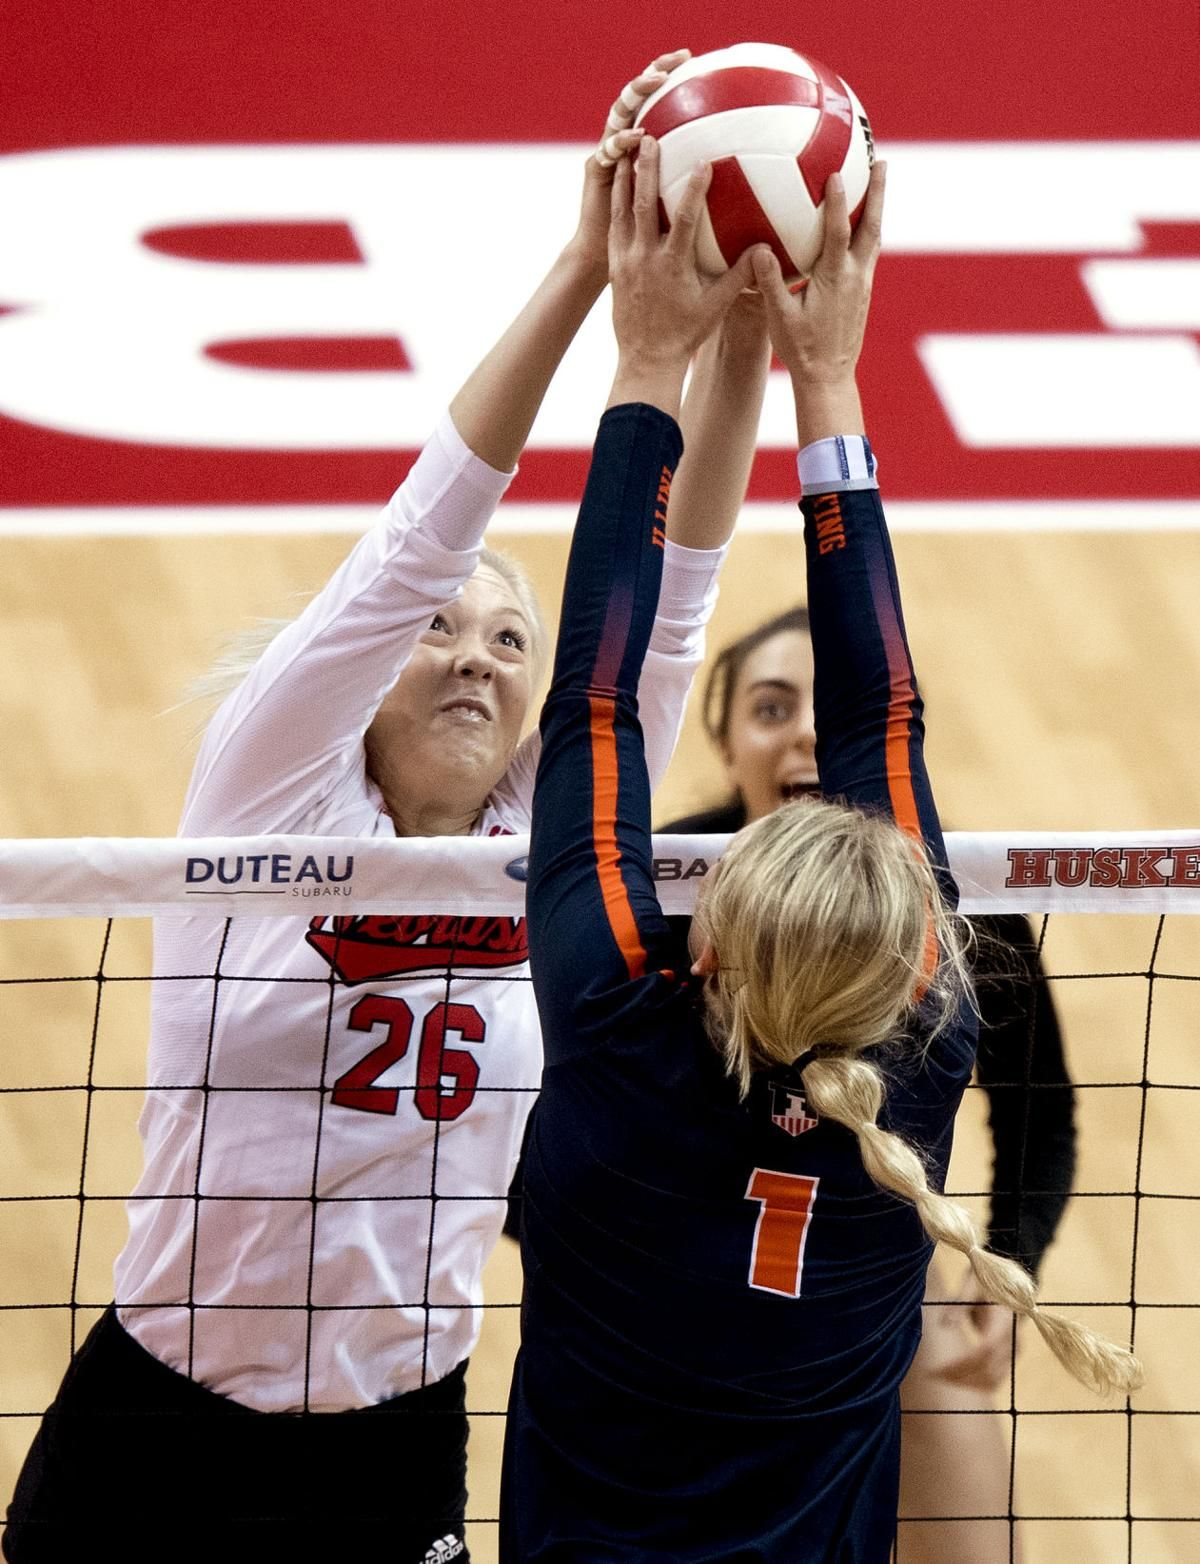 Nebraska Volleyball Players Eager For Chance To Break Season Tie With Illinois This Time Volleyball Players Female Volleyball Players Professional Volleyball